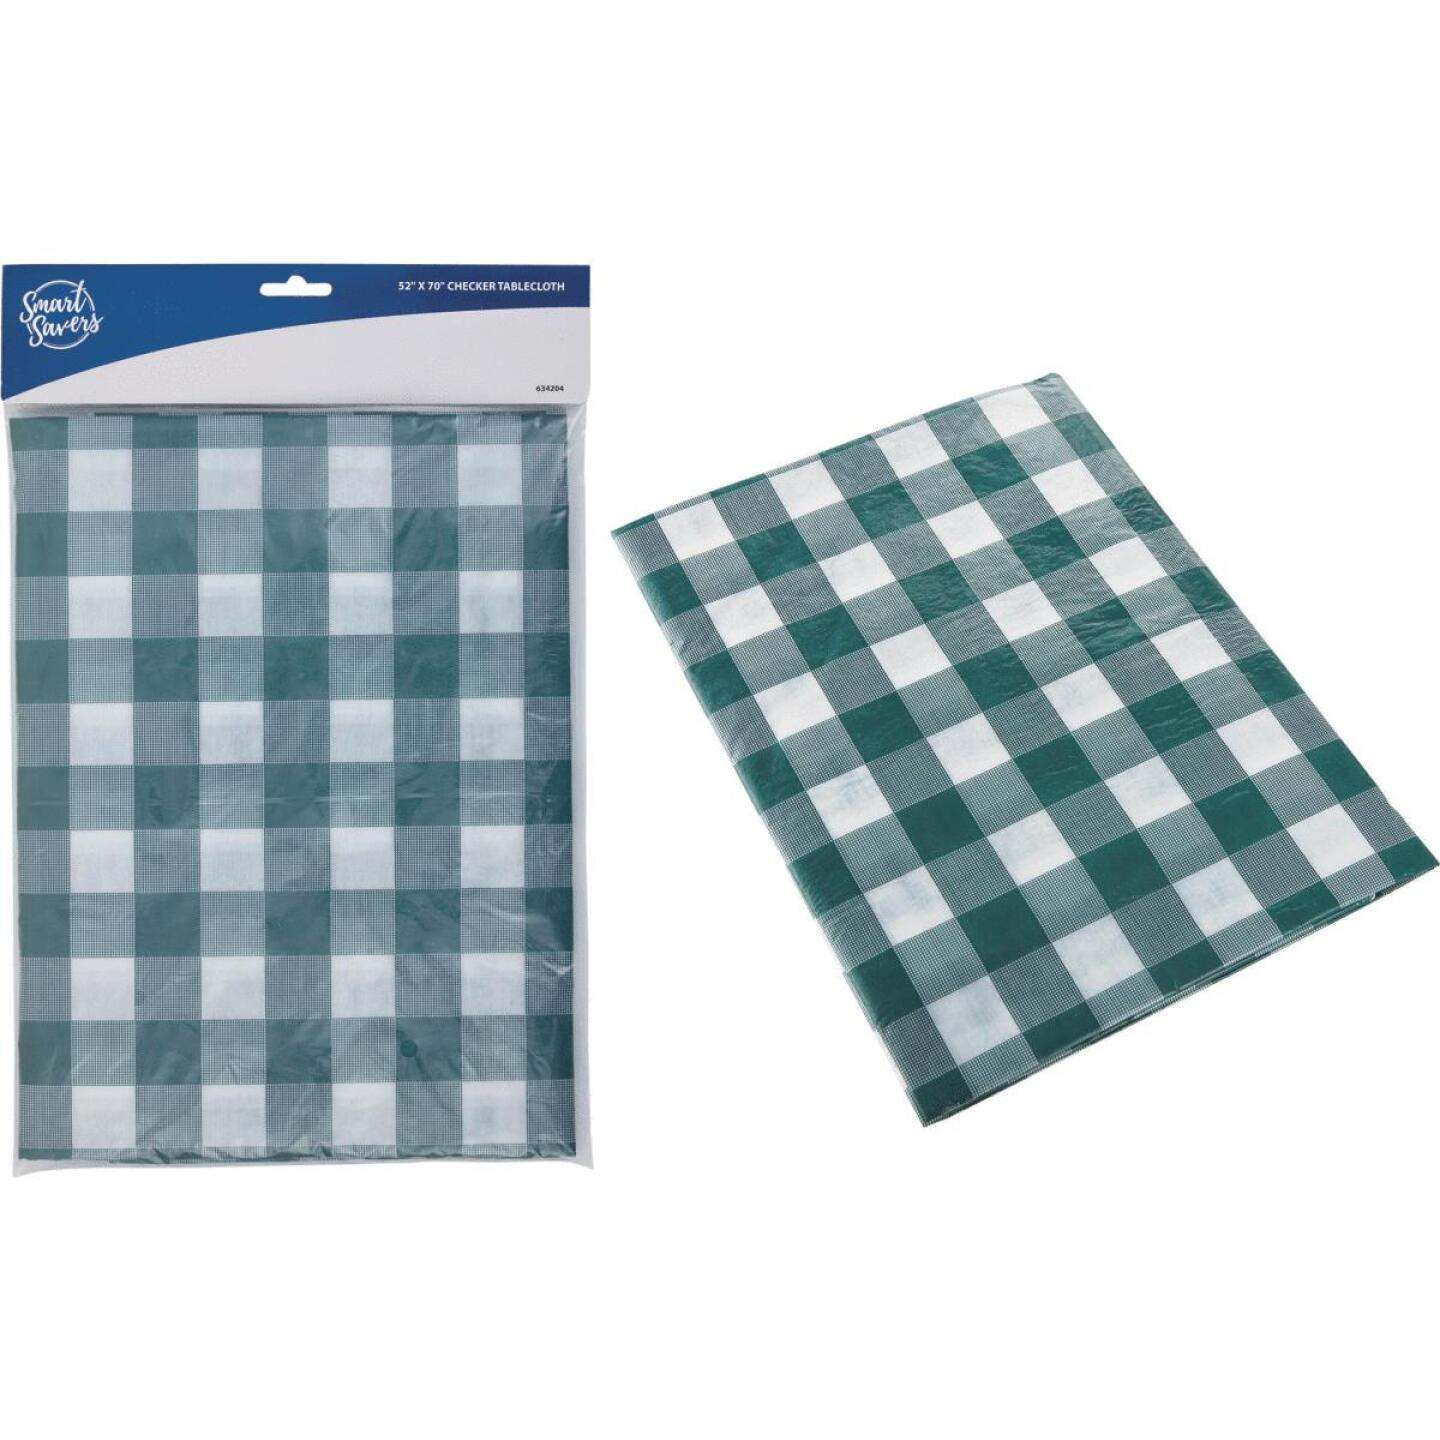 Smart Savers 52 In. W. x 70 In. L. Green & White Checkerboard Tablecloth Image 1